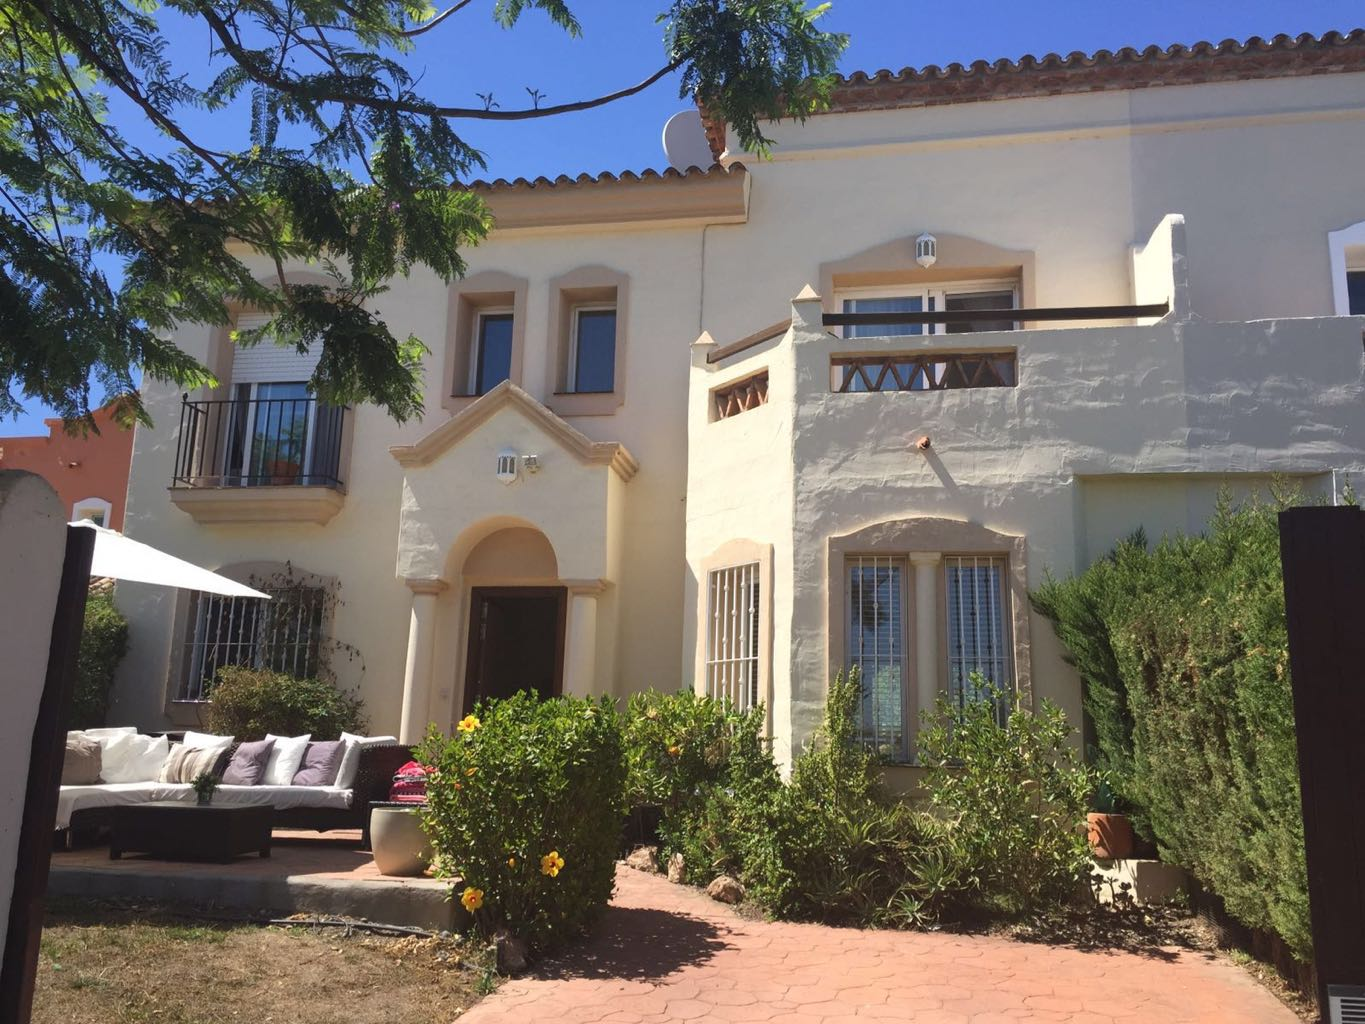 Beautiful townhouse for long term rental in Cancelada, just off the new Golden Mile